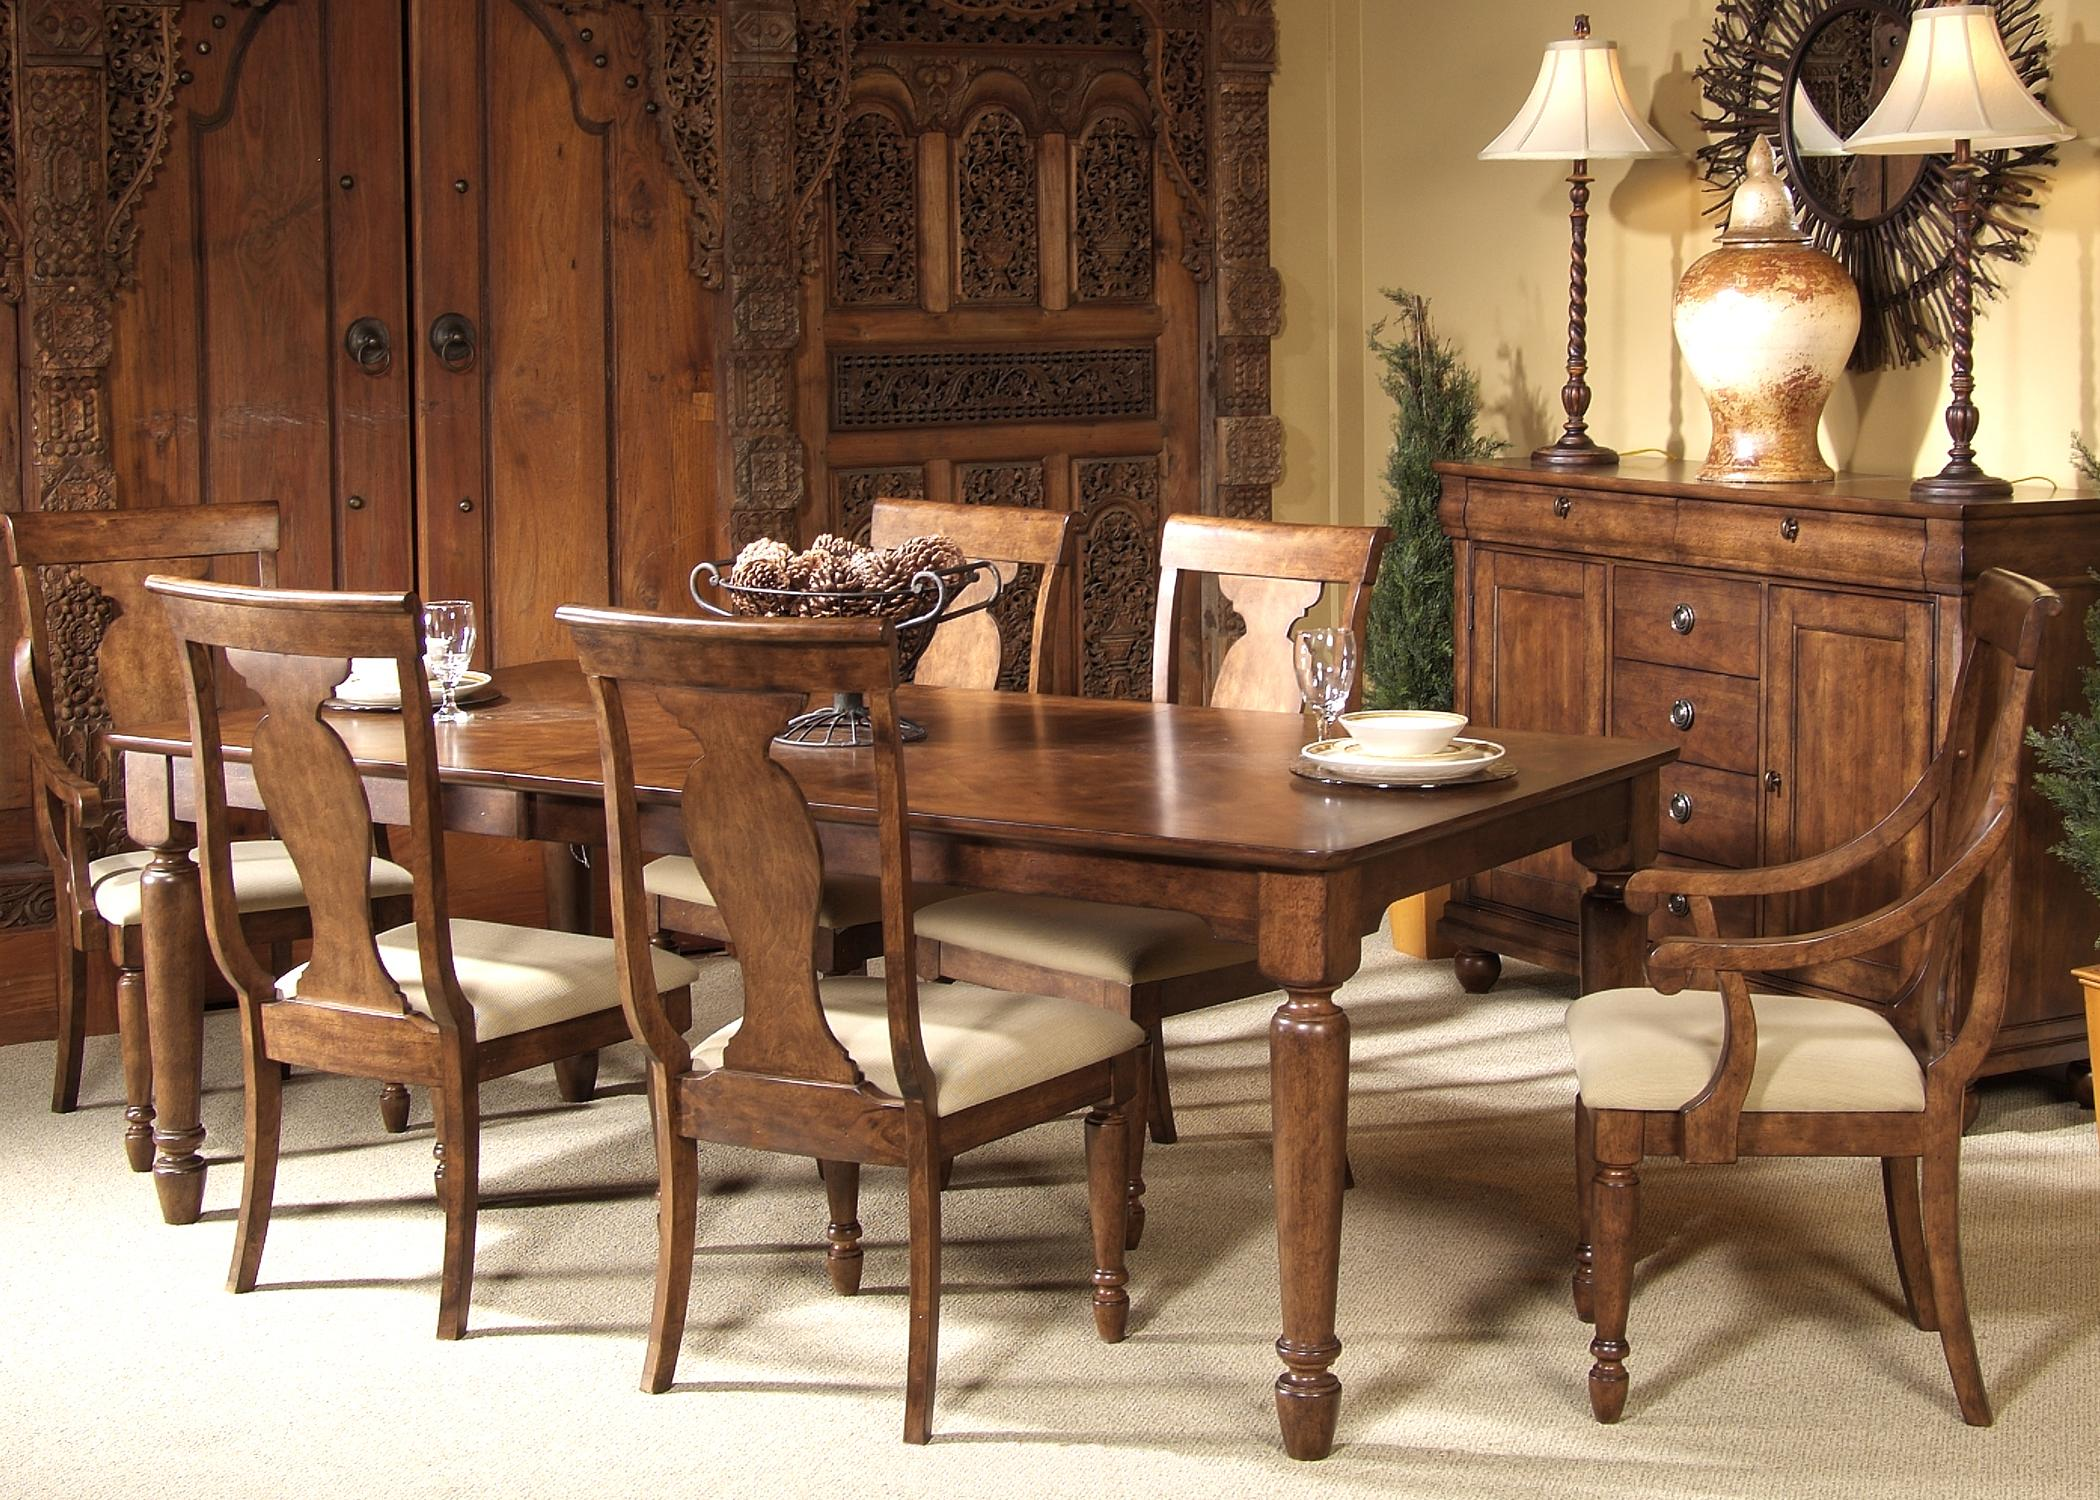 Breakfast Room Tables Rustic Traditions Seven Piece Rectangular Table And Chair Dining Set By Liberty Furniture At Wayside Furniture